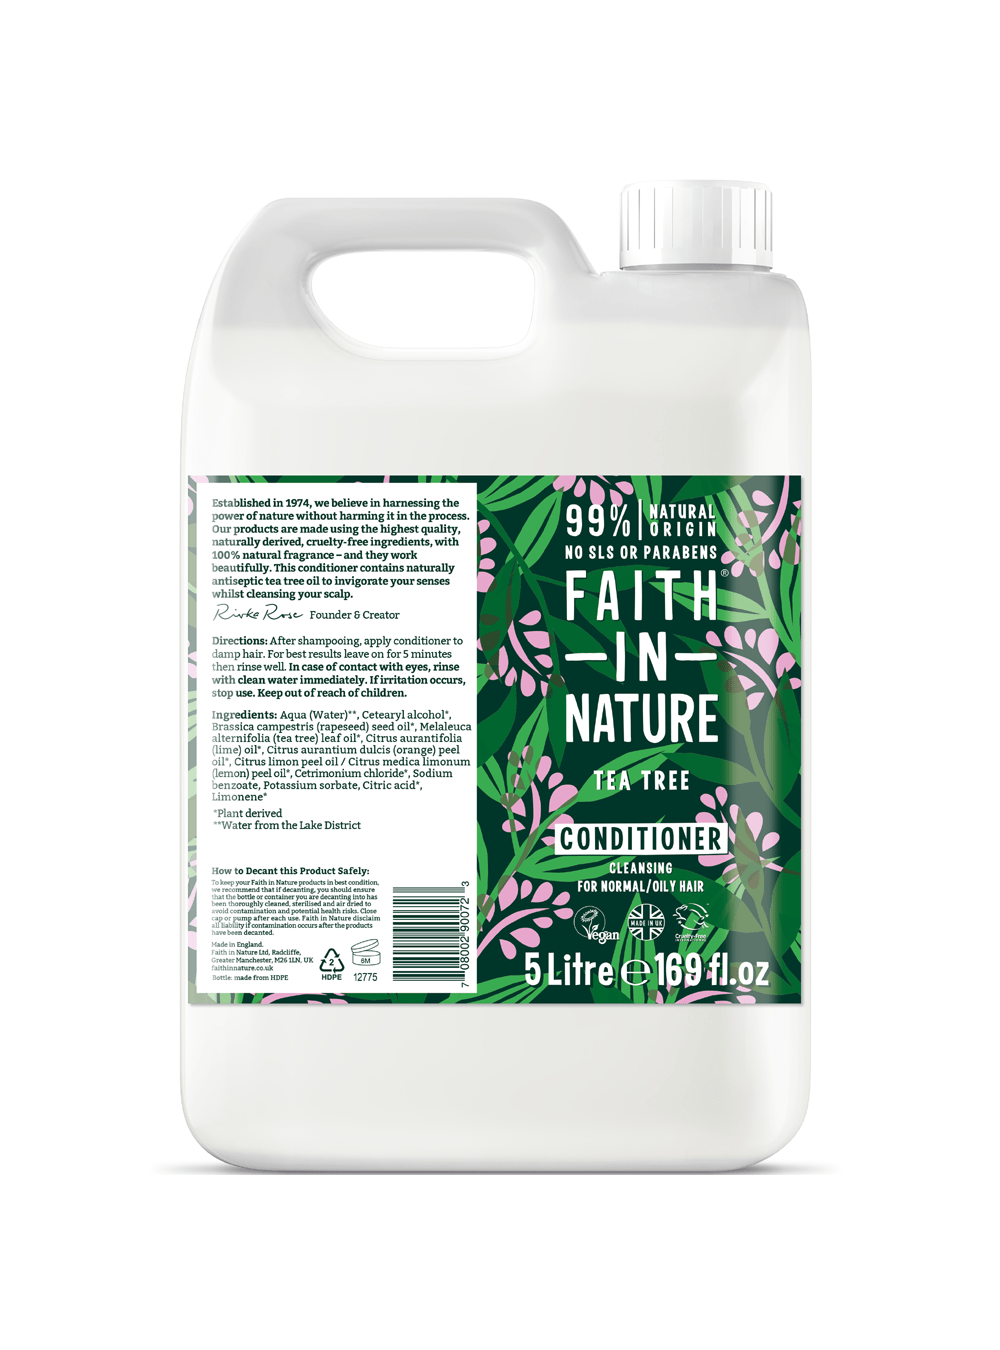 Faith in Nature Tea Tree Conditioner 5 Litre